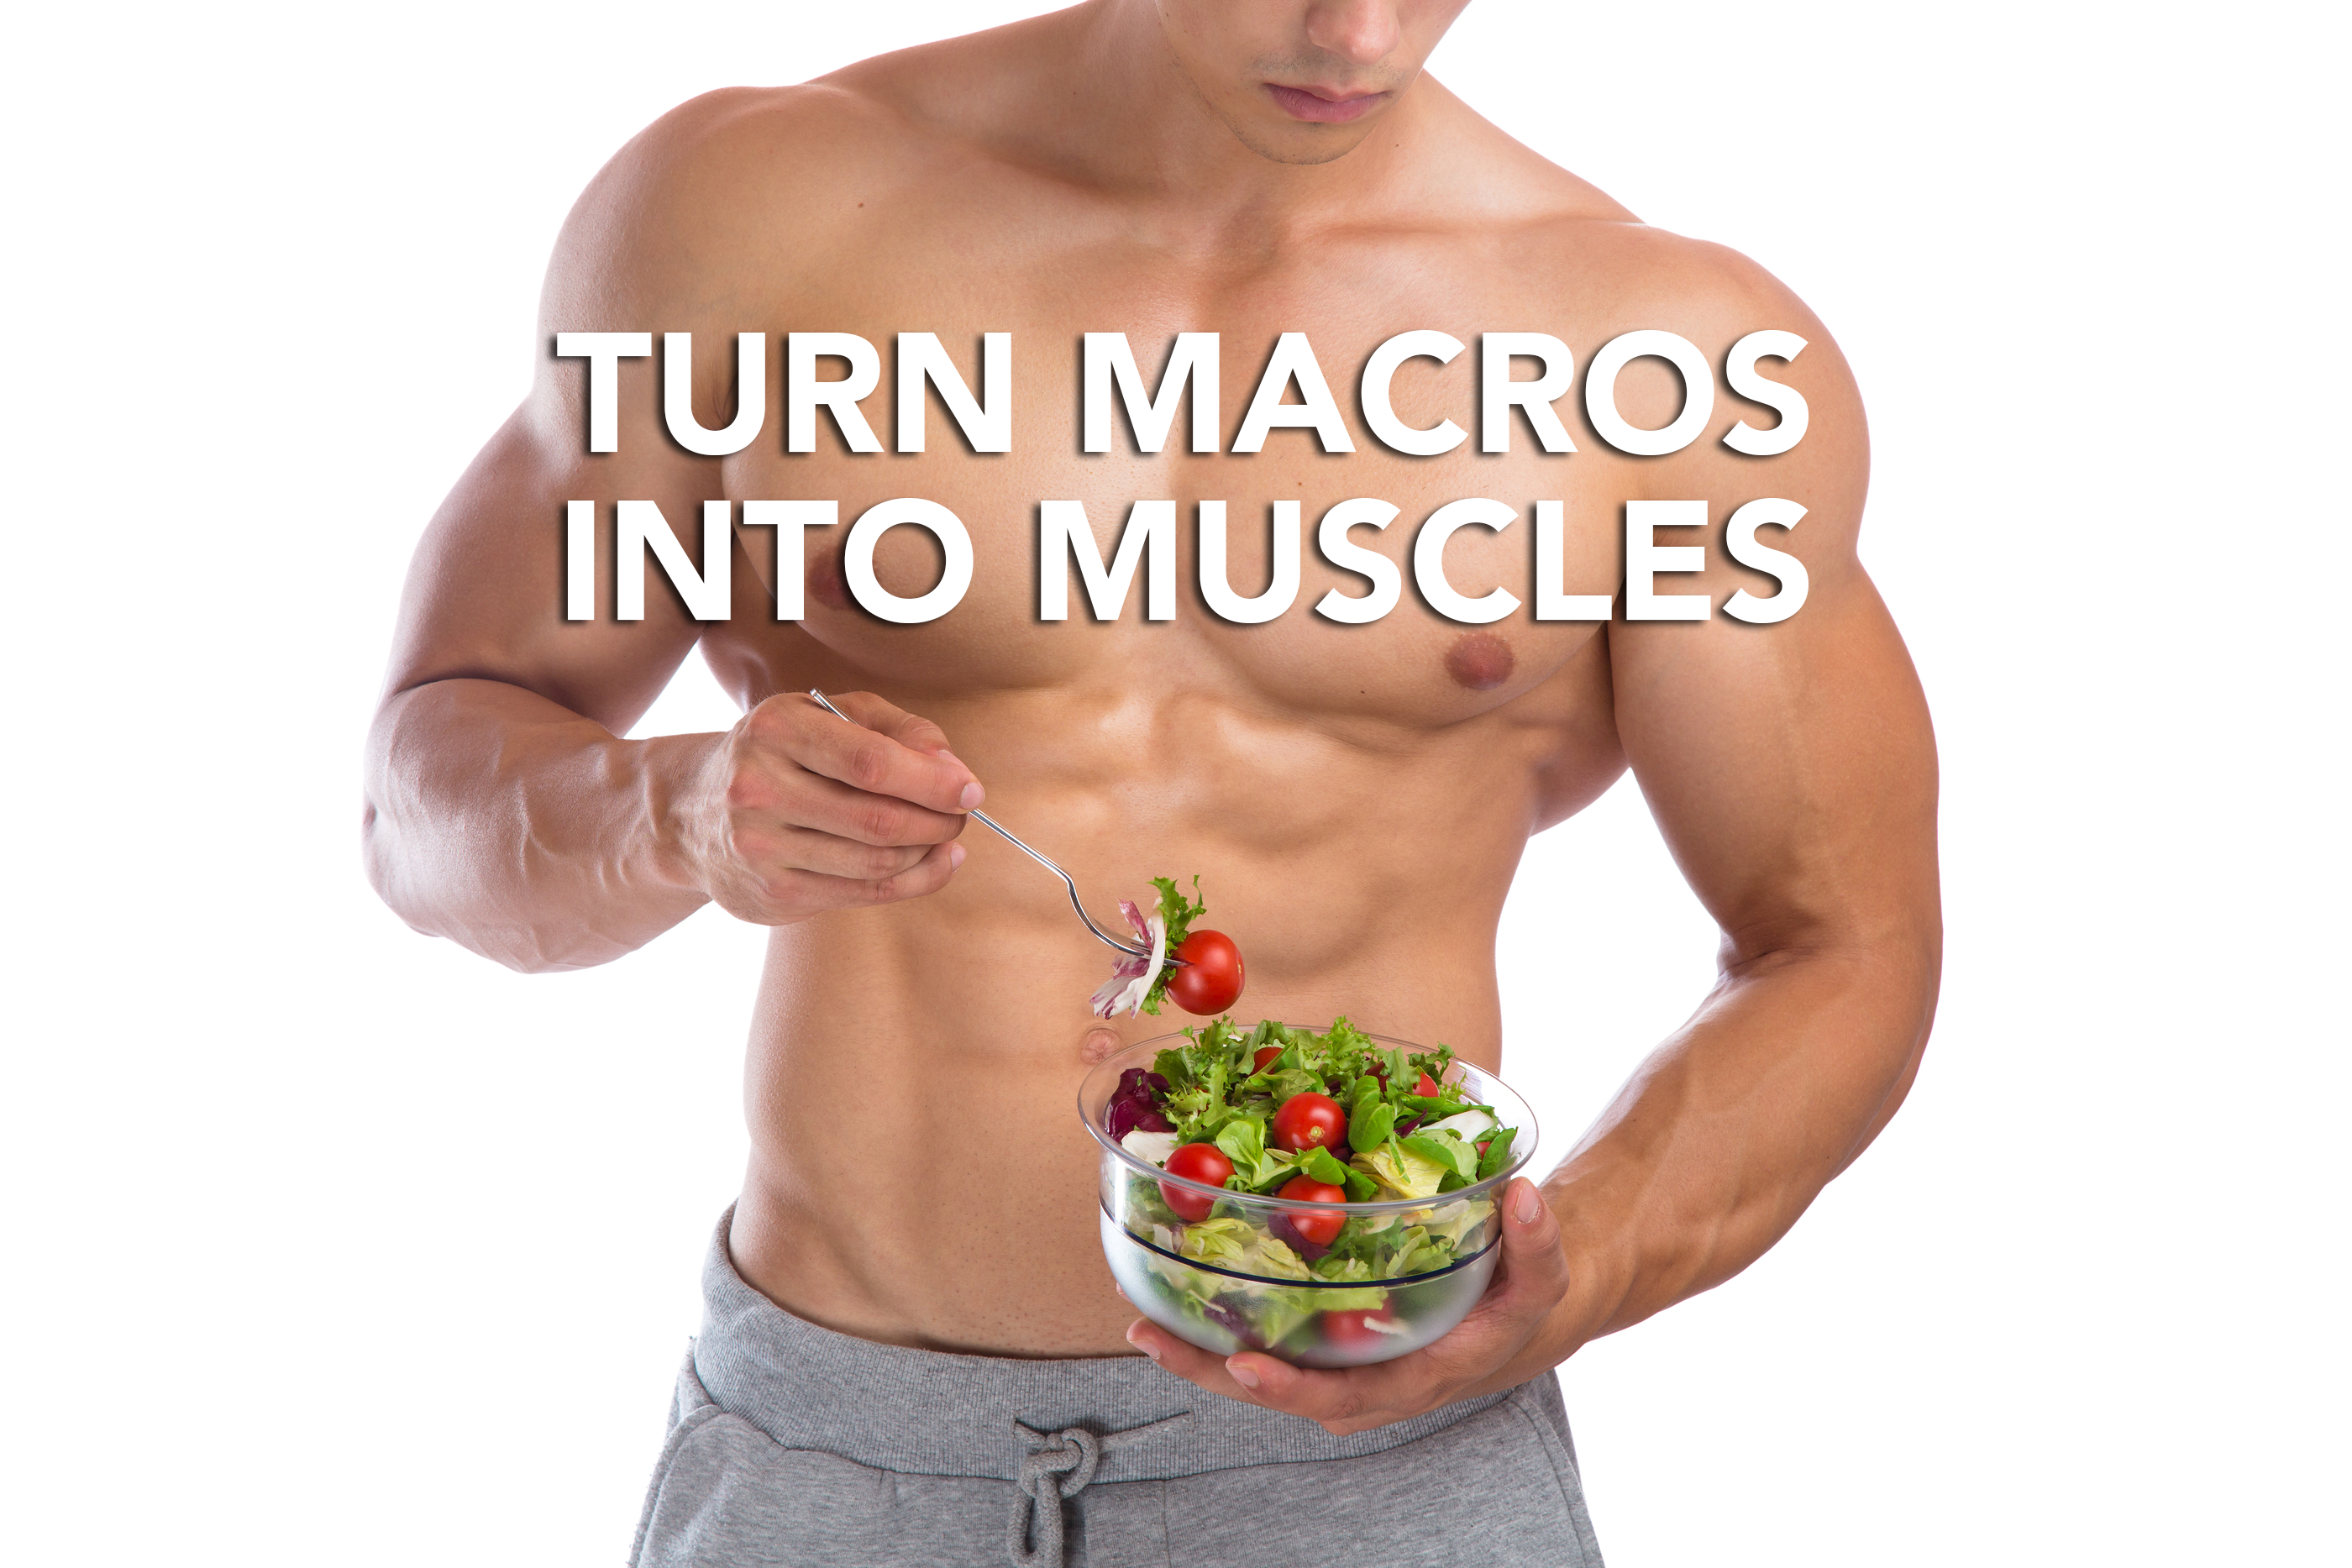 Turn Macros Into Muscles